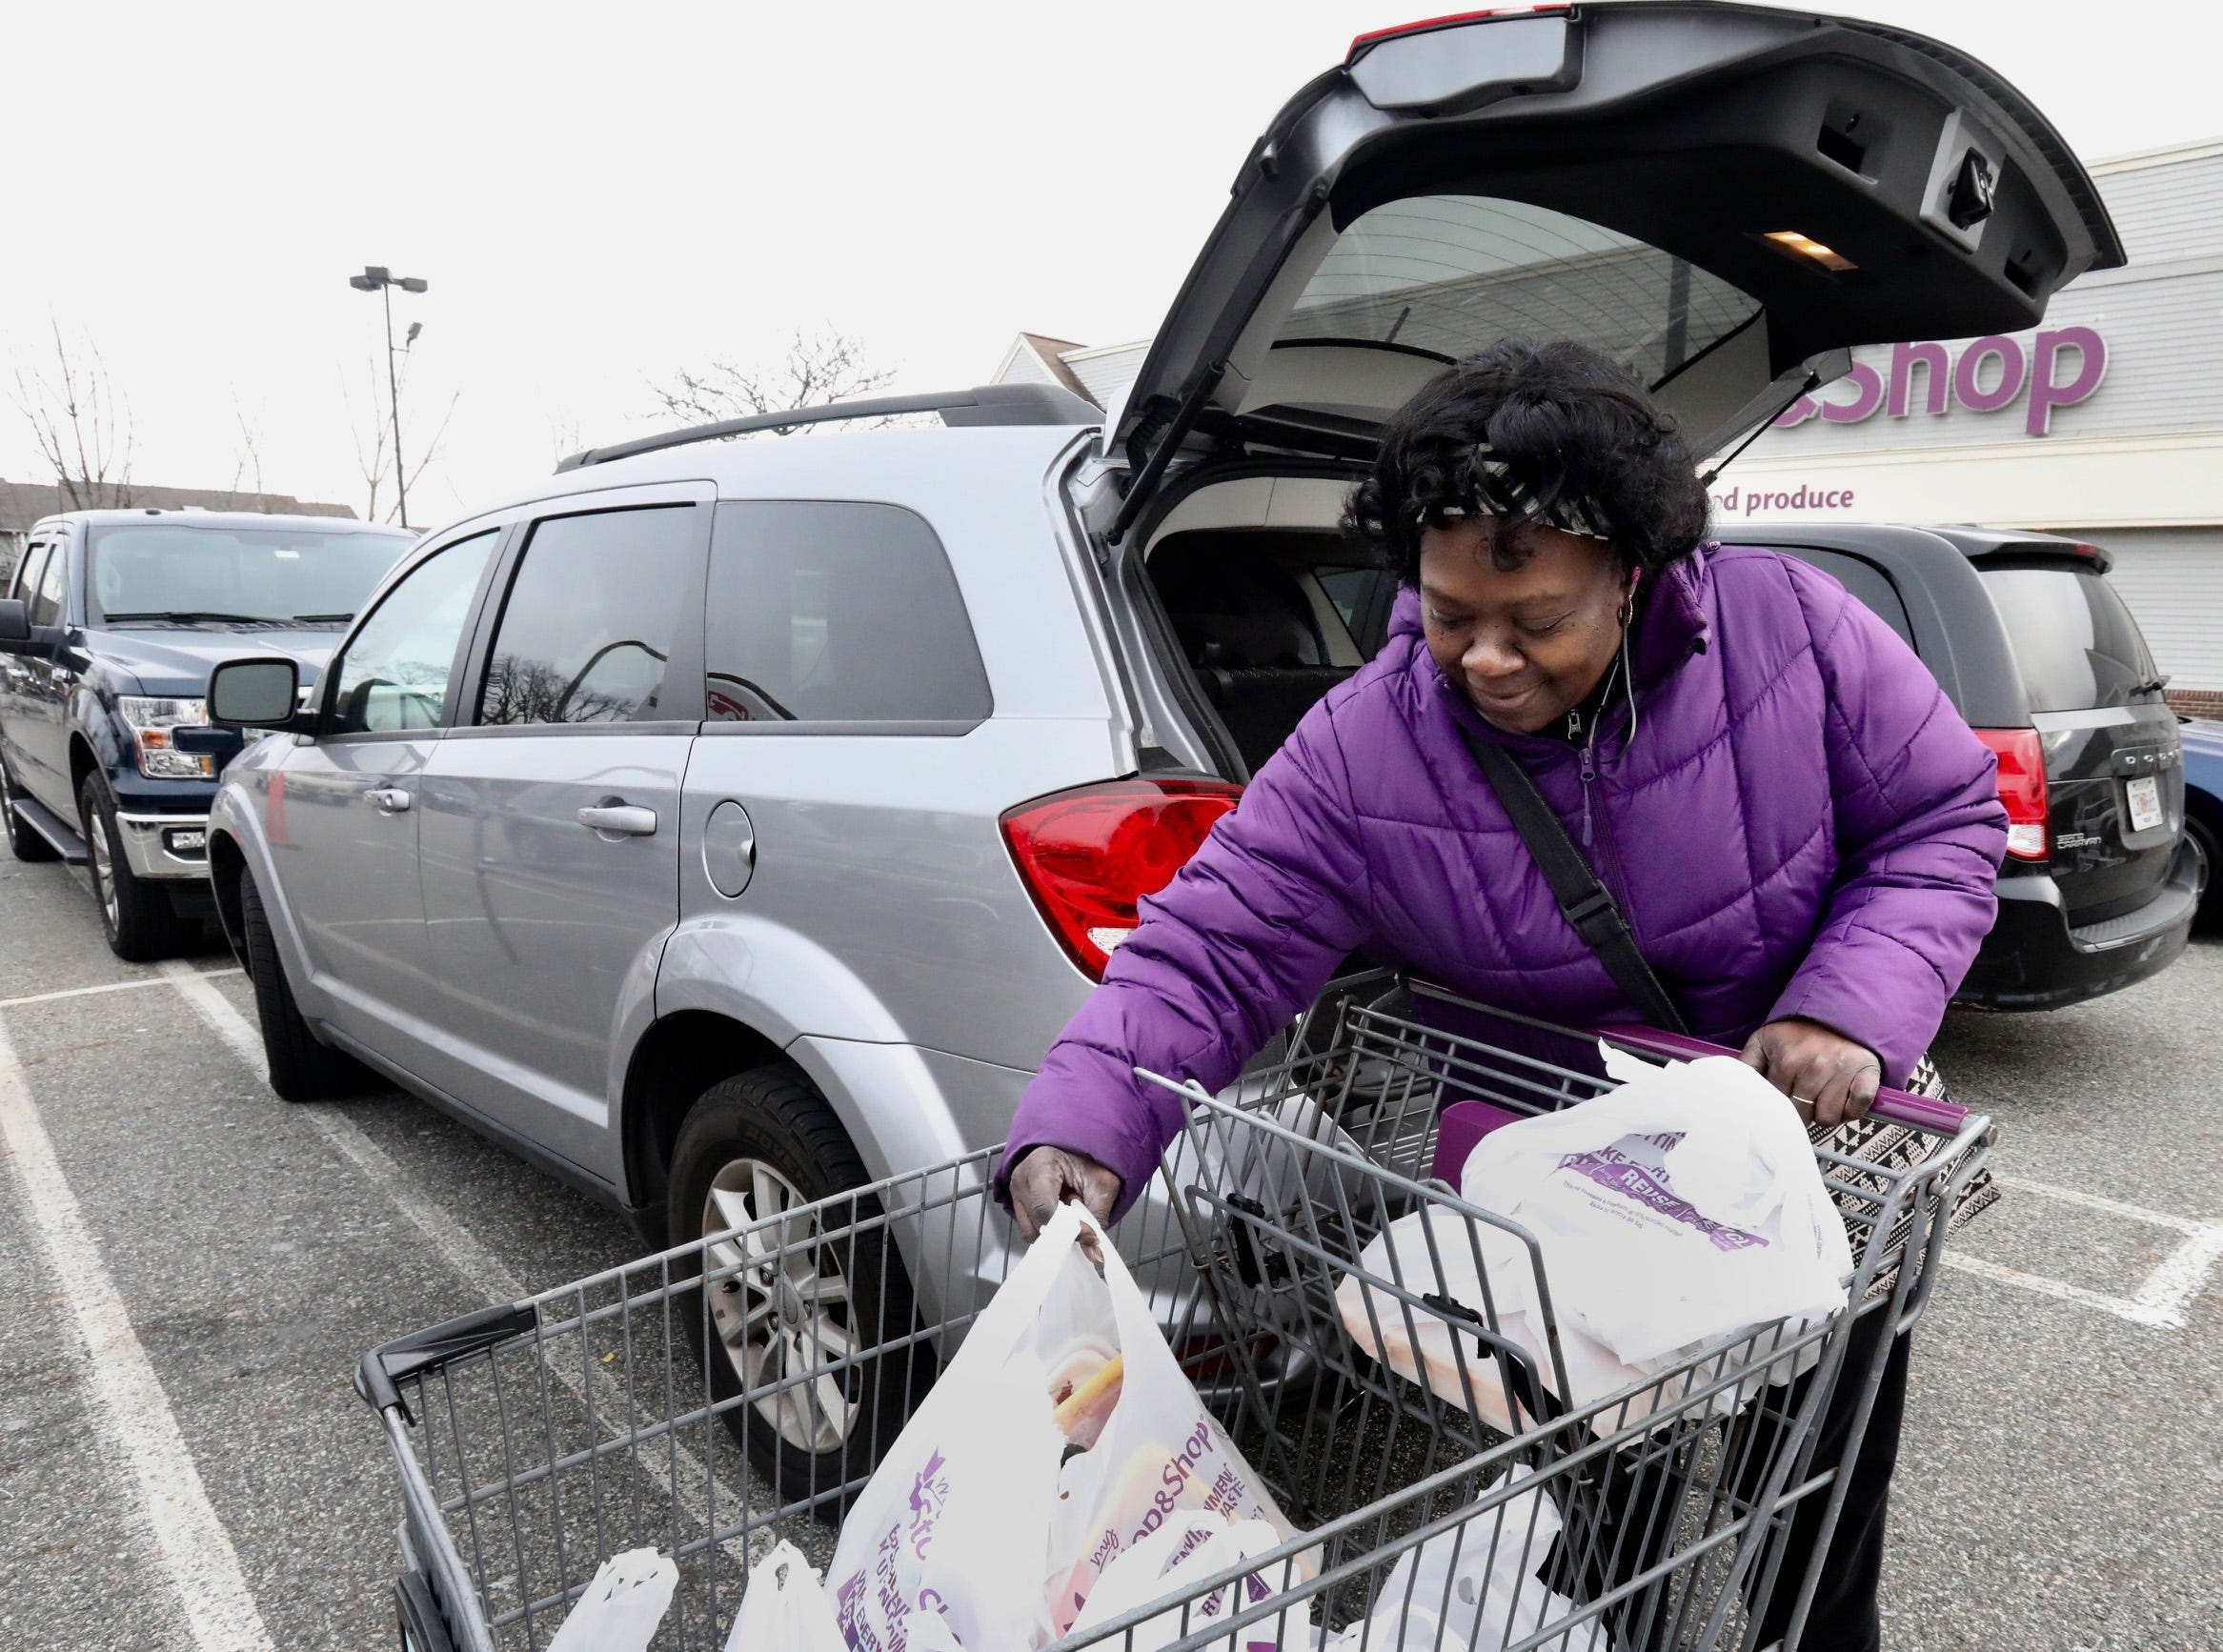 """I'm going to cook all weekend long. First, I'm going to thinly slice this pork loin and serve it with salad for dinner,"" says Joan Booker of Nanuet when shopping before the snowstorm at Stop&Shop in Nanuet Jan. 17, 2019."